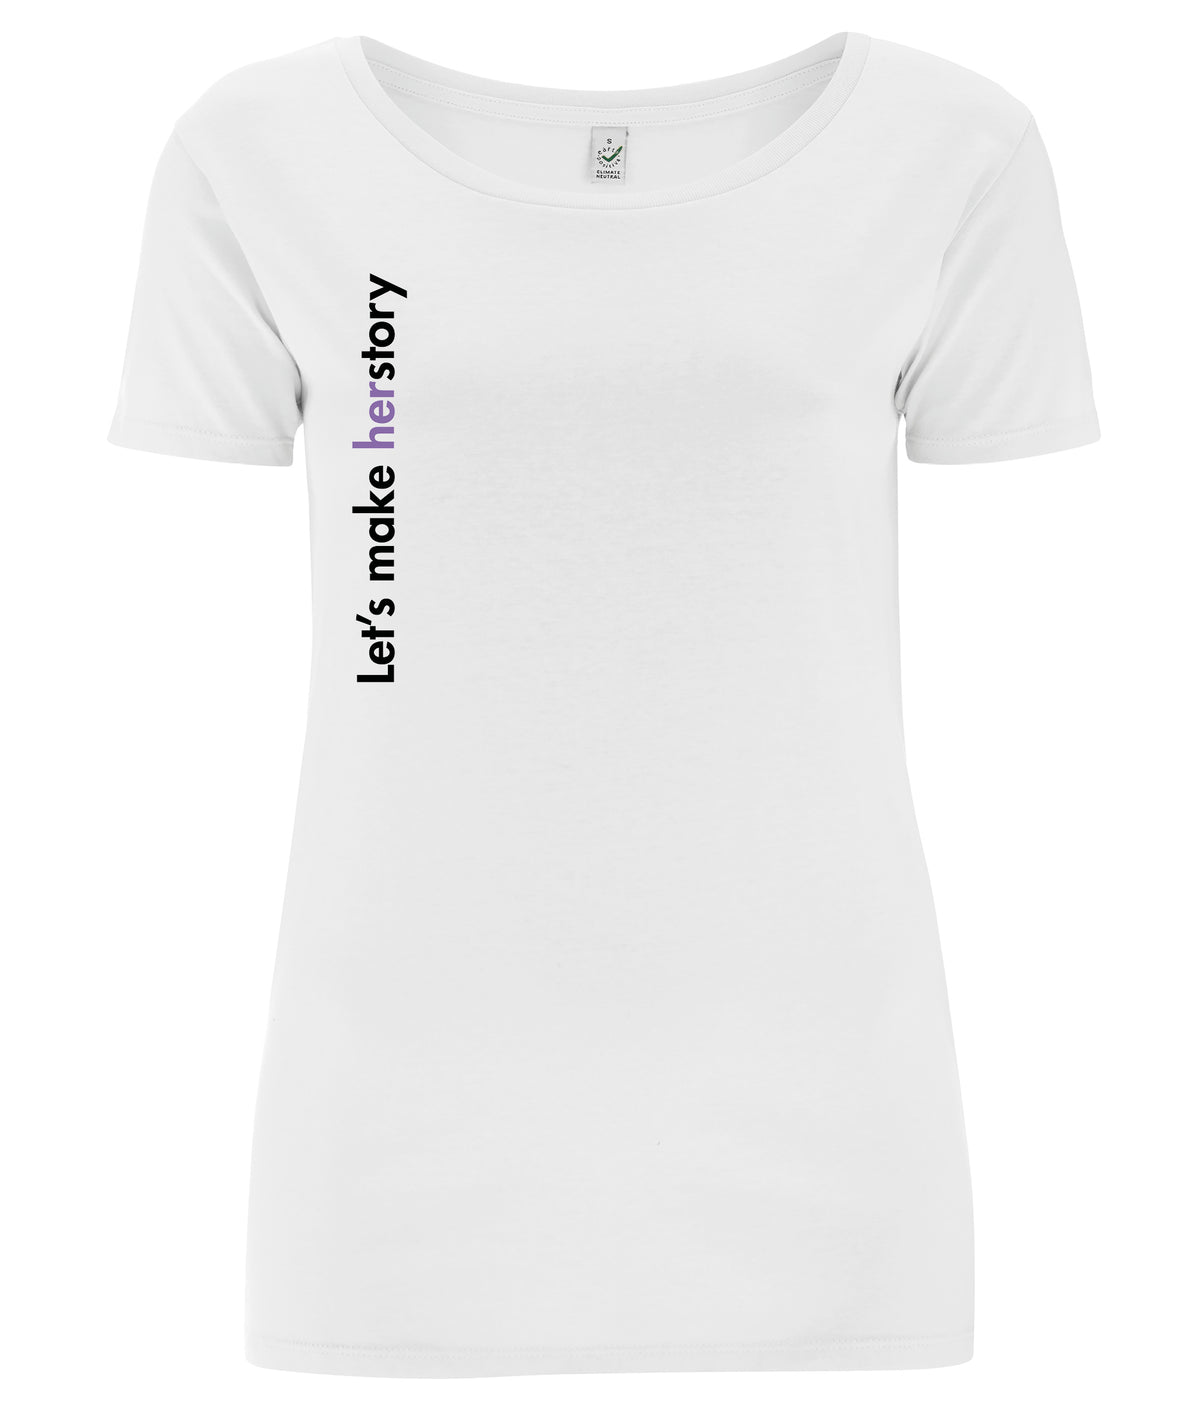 Let's Make Herstory Open Neck Organic Feminist T Shirt White